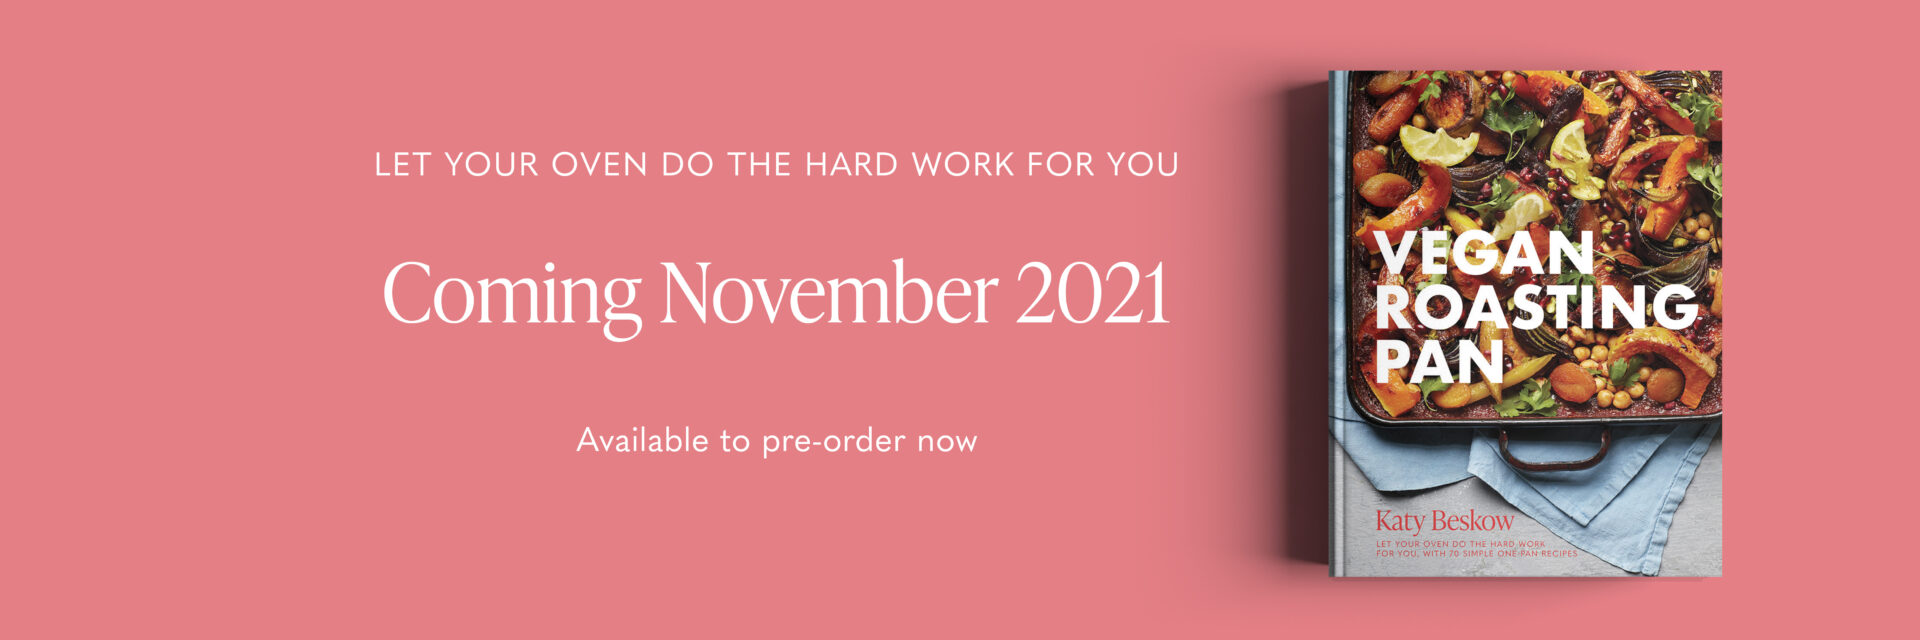 Pink banner image 'Let your oven do the hard work for you - Coming November 2021 Available to pre-order now.' Image shows book cover of Vegan Roasting Pan book by Katy Beskow